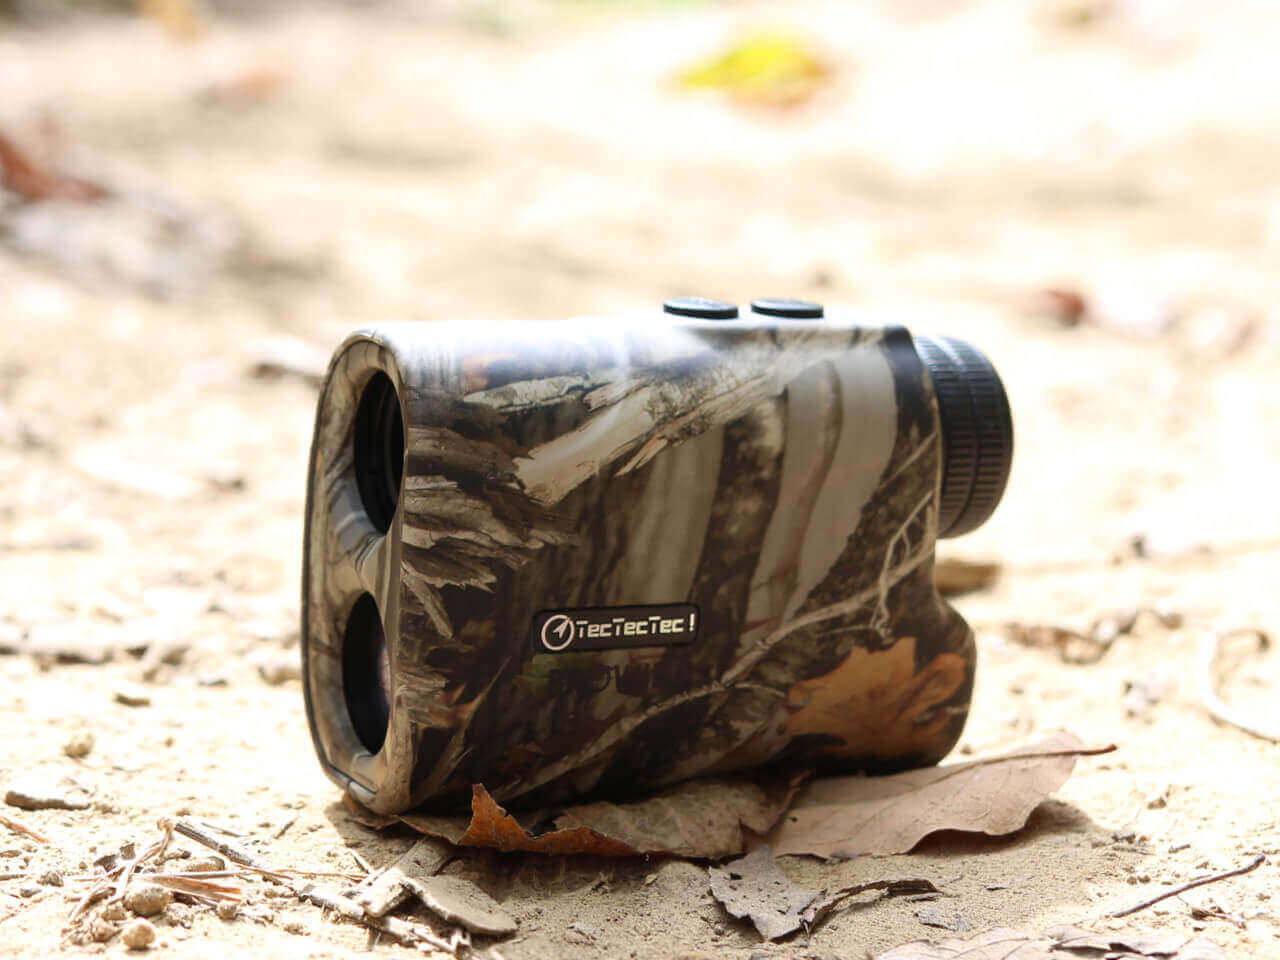 TecTecTec-Hunting-Rangefinder-Prowild-Advanced-speed-technology